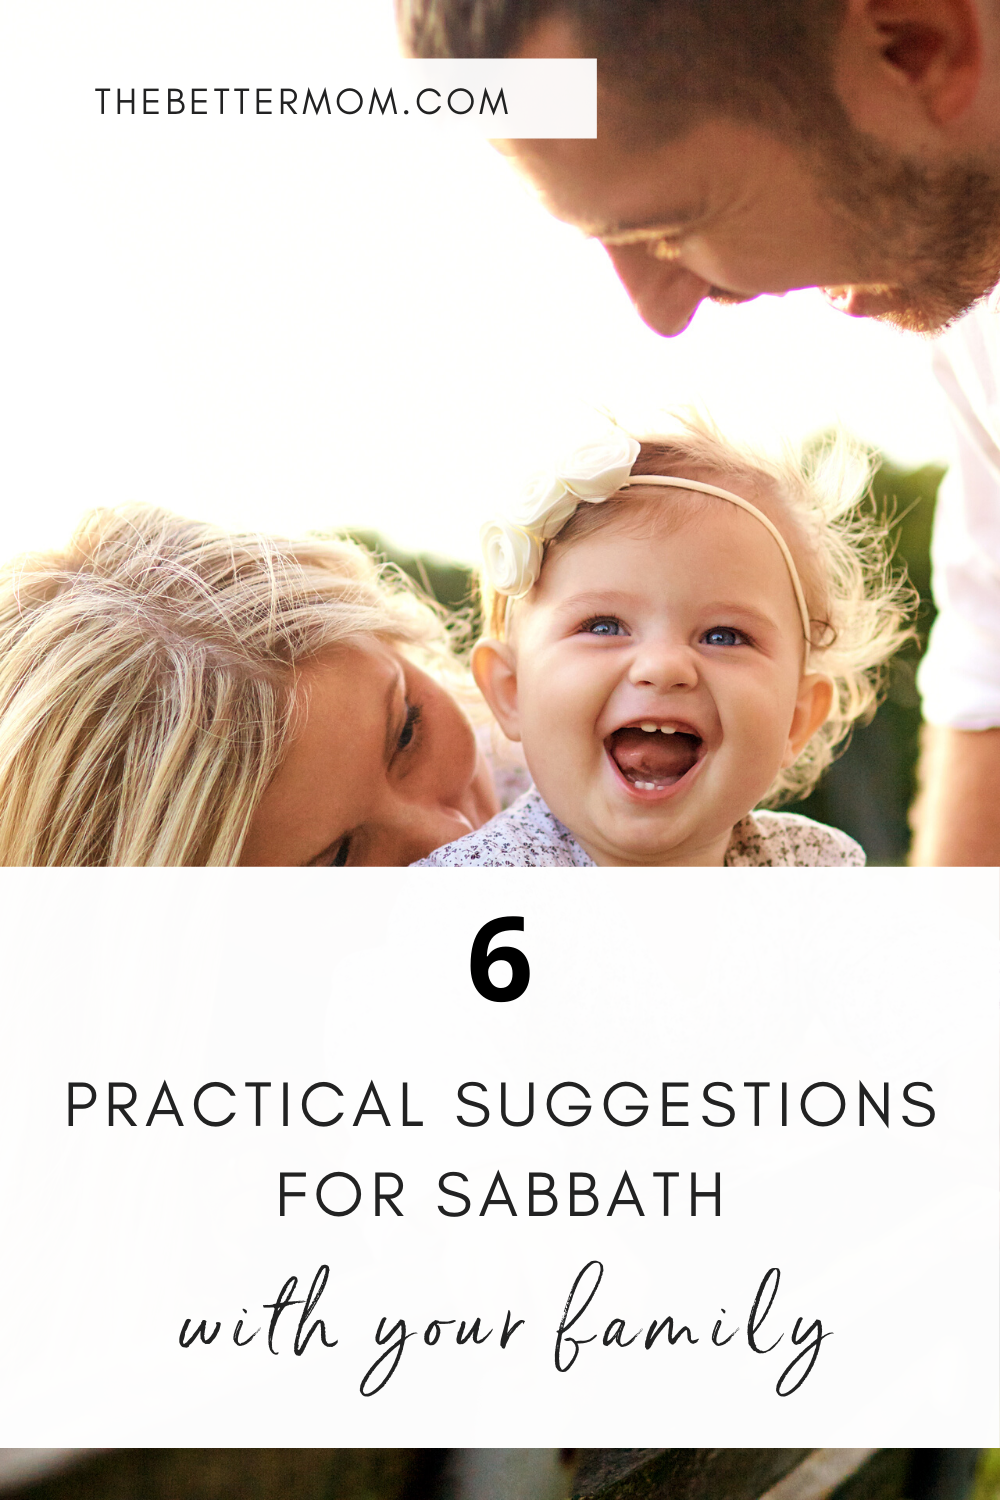 Sabbath is a simple command, but not an easy one. But, there are plenty of ways you and your family can observe Sabbath together! It may look different for everyone, but this practice can be fun, refreshing, and God-honoring.